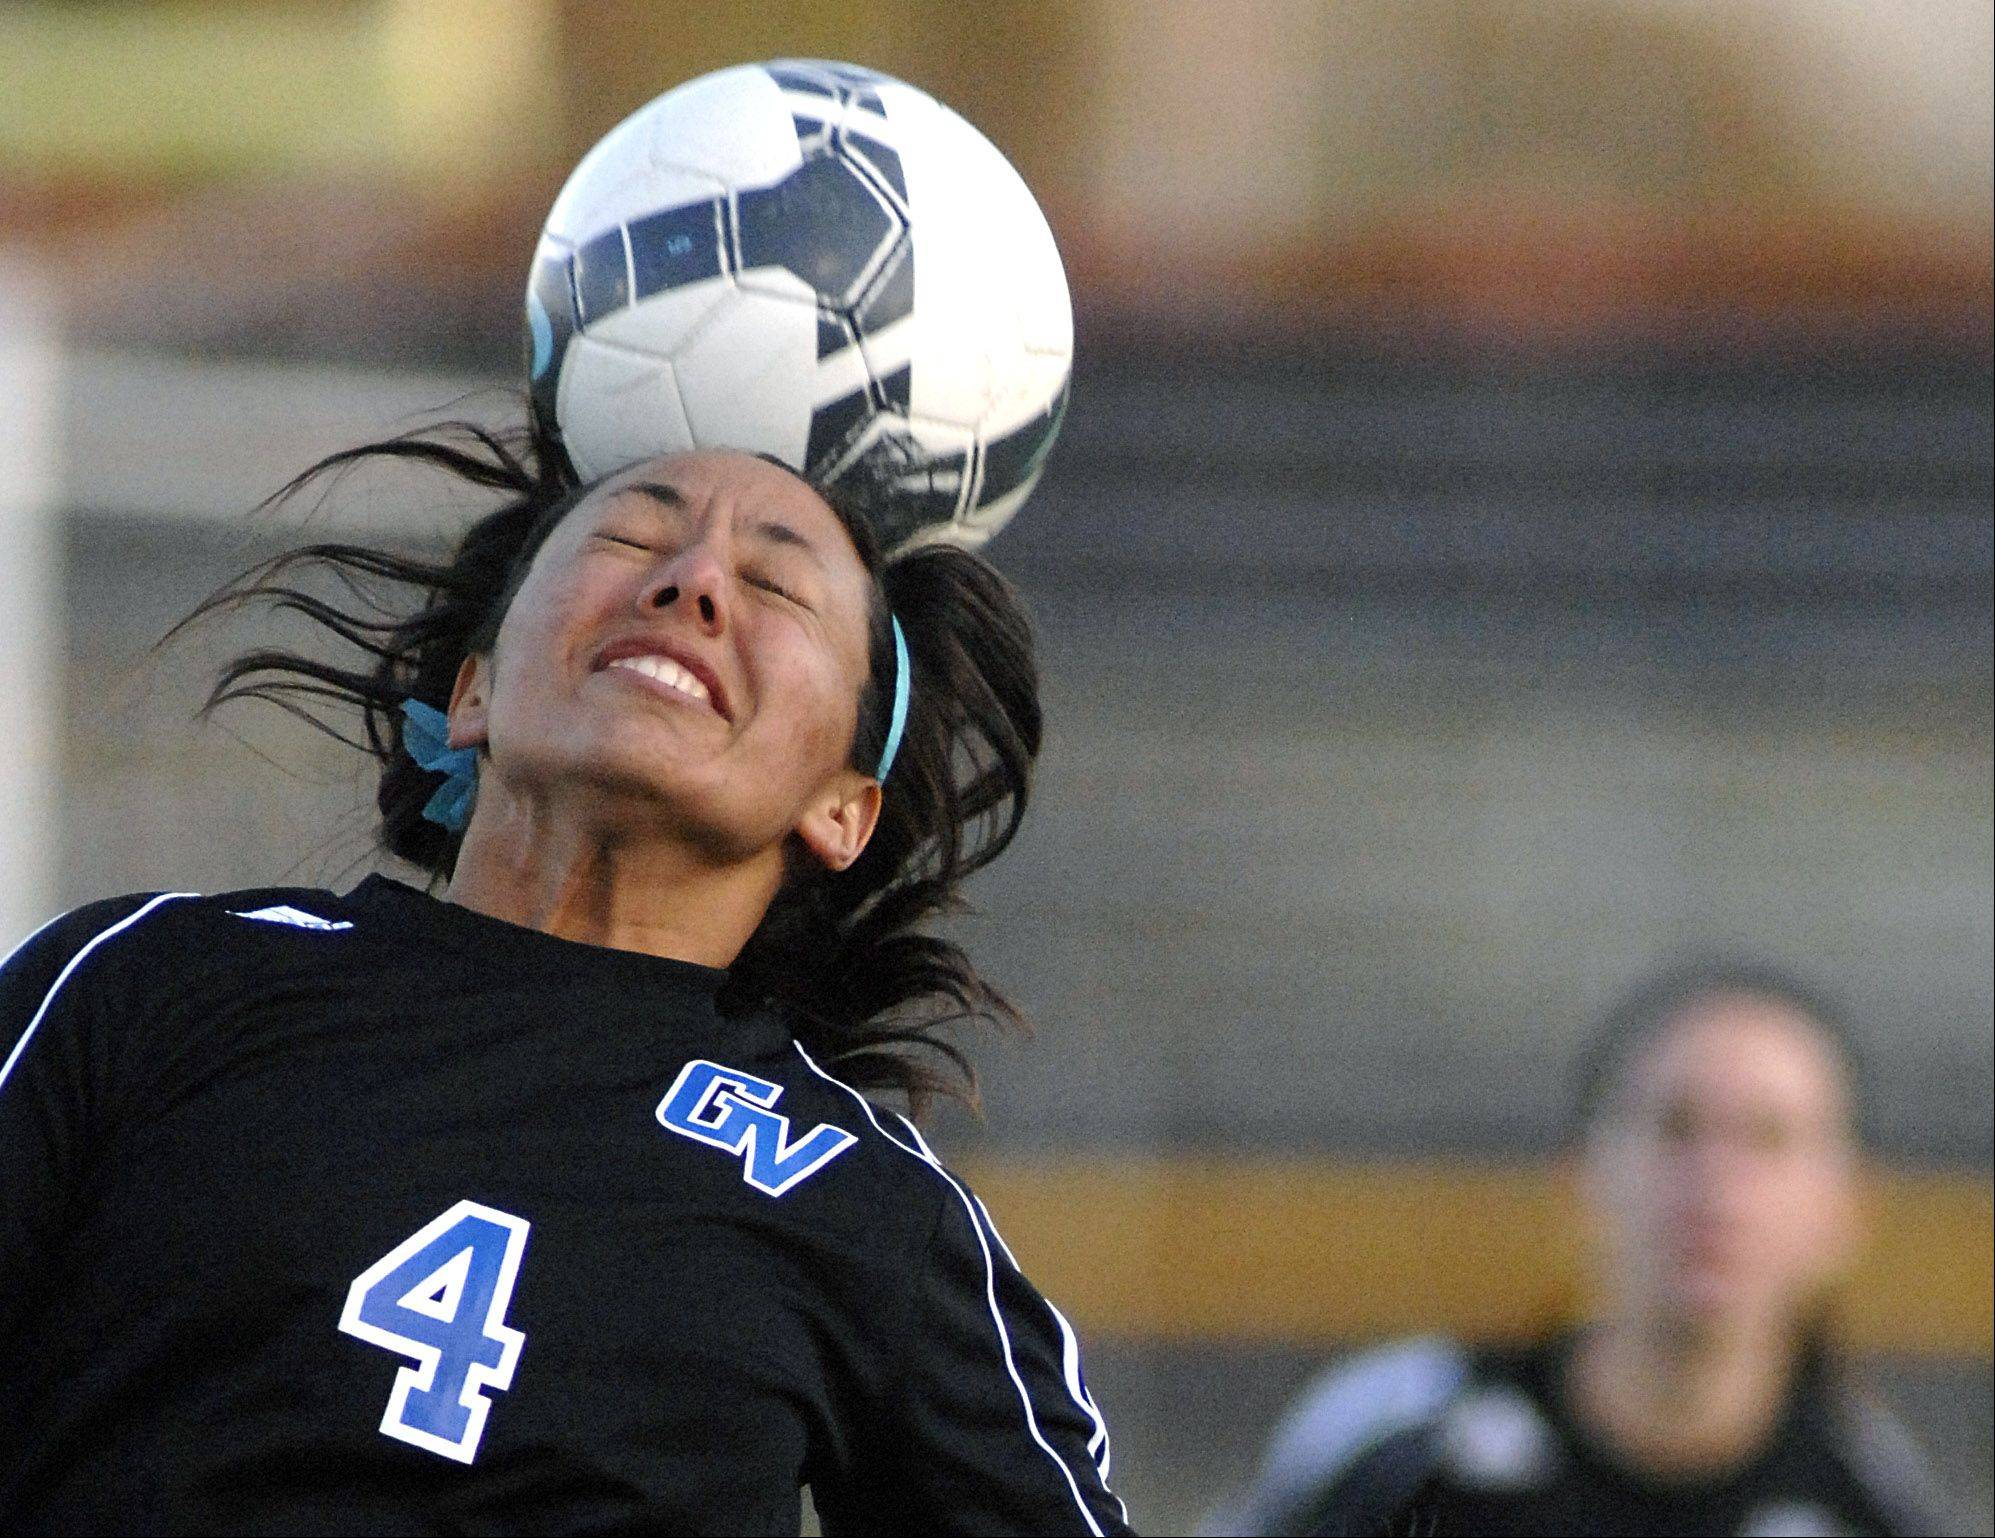 Geneva's Kristin Rodriguez heads the ball in the first half on Wednesday, April 4.